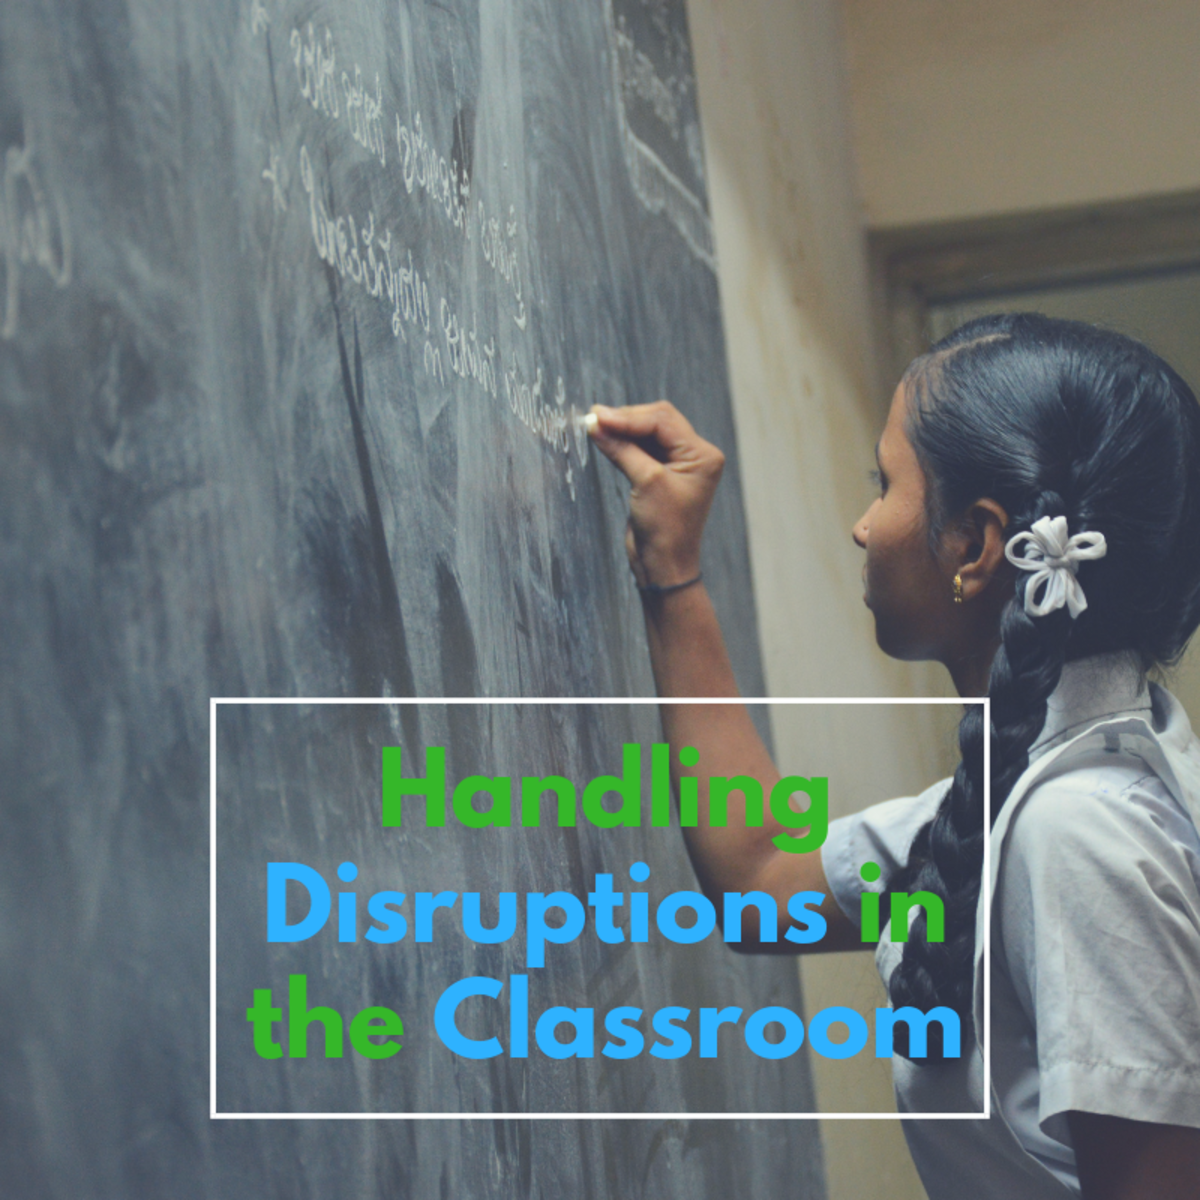 A part of lesson planning involves being prepared to deal with disruptions. This article will provide some insight into regaining control of your classroom.